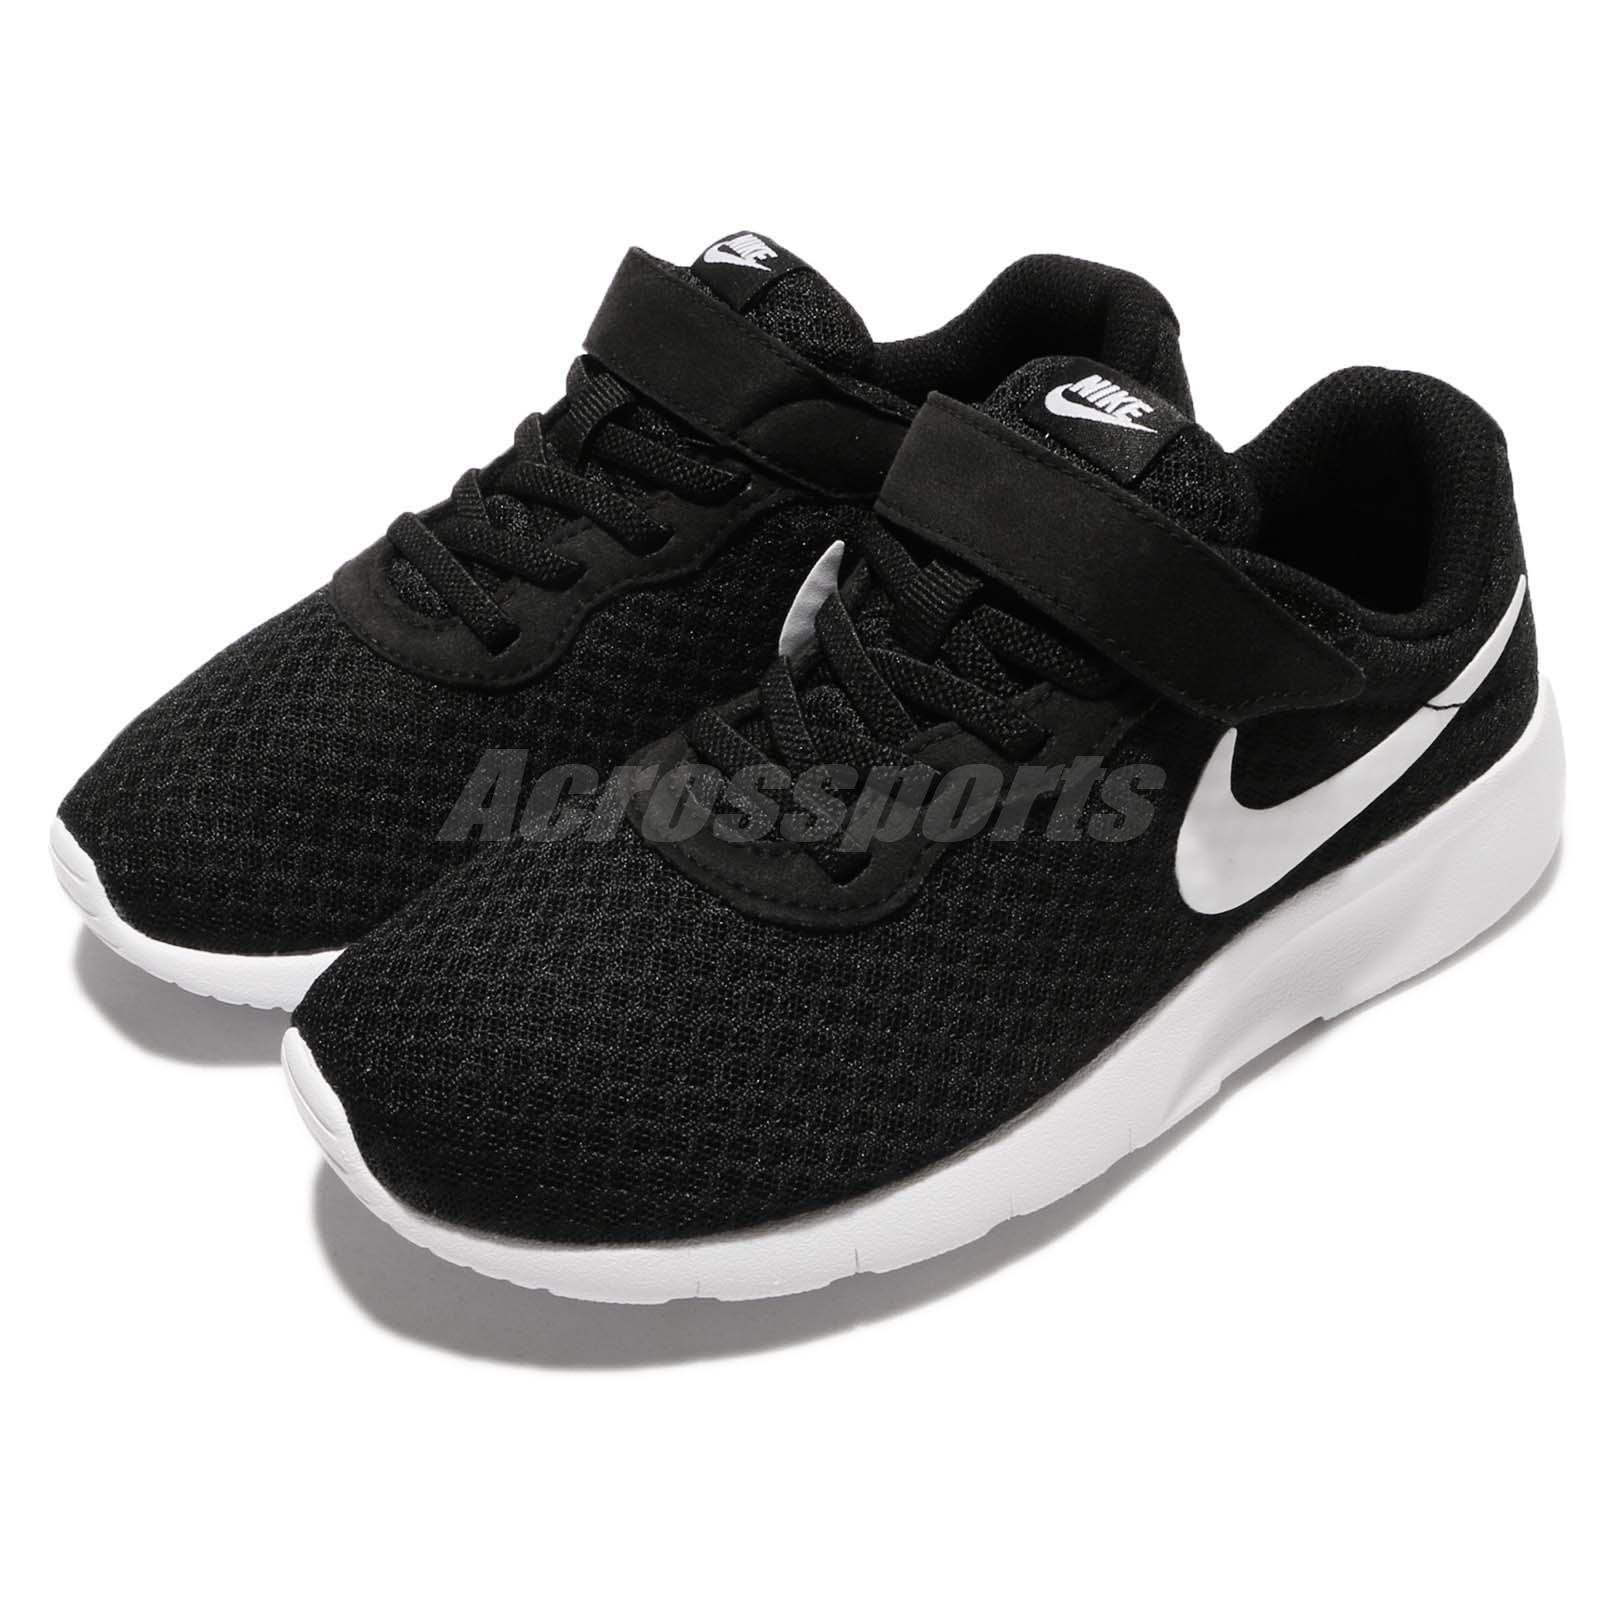 0b60444ca8 Details about Nike Tanjun PSV Black White Preschool Boys Girls Running Shoe  Sneaker 844868-011